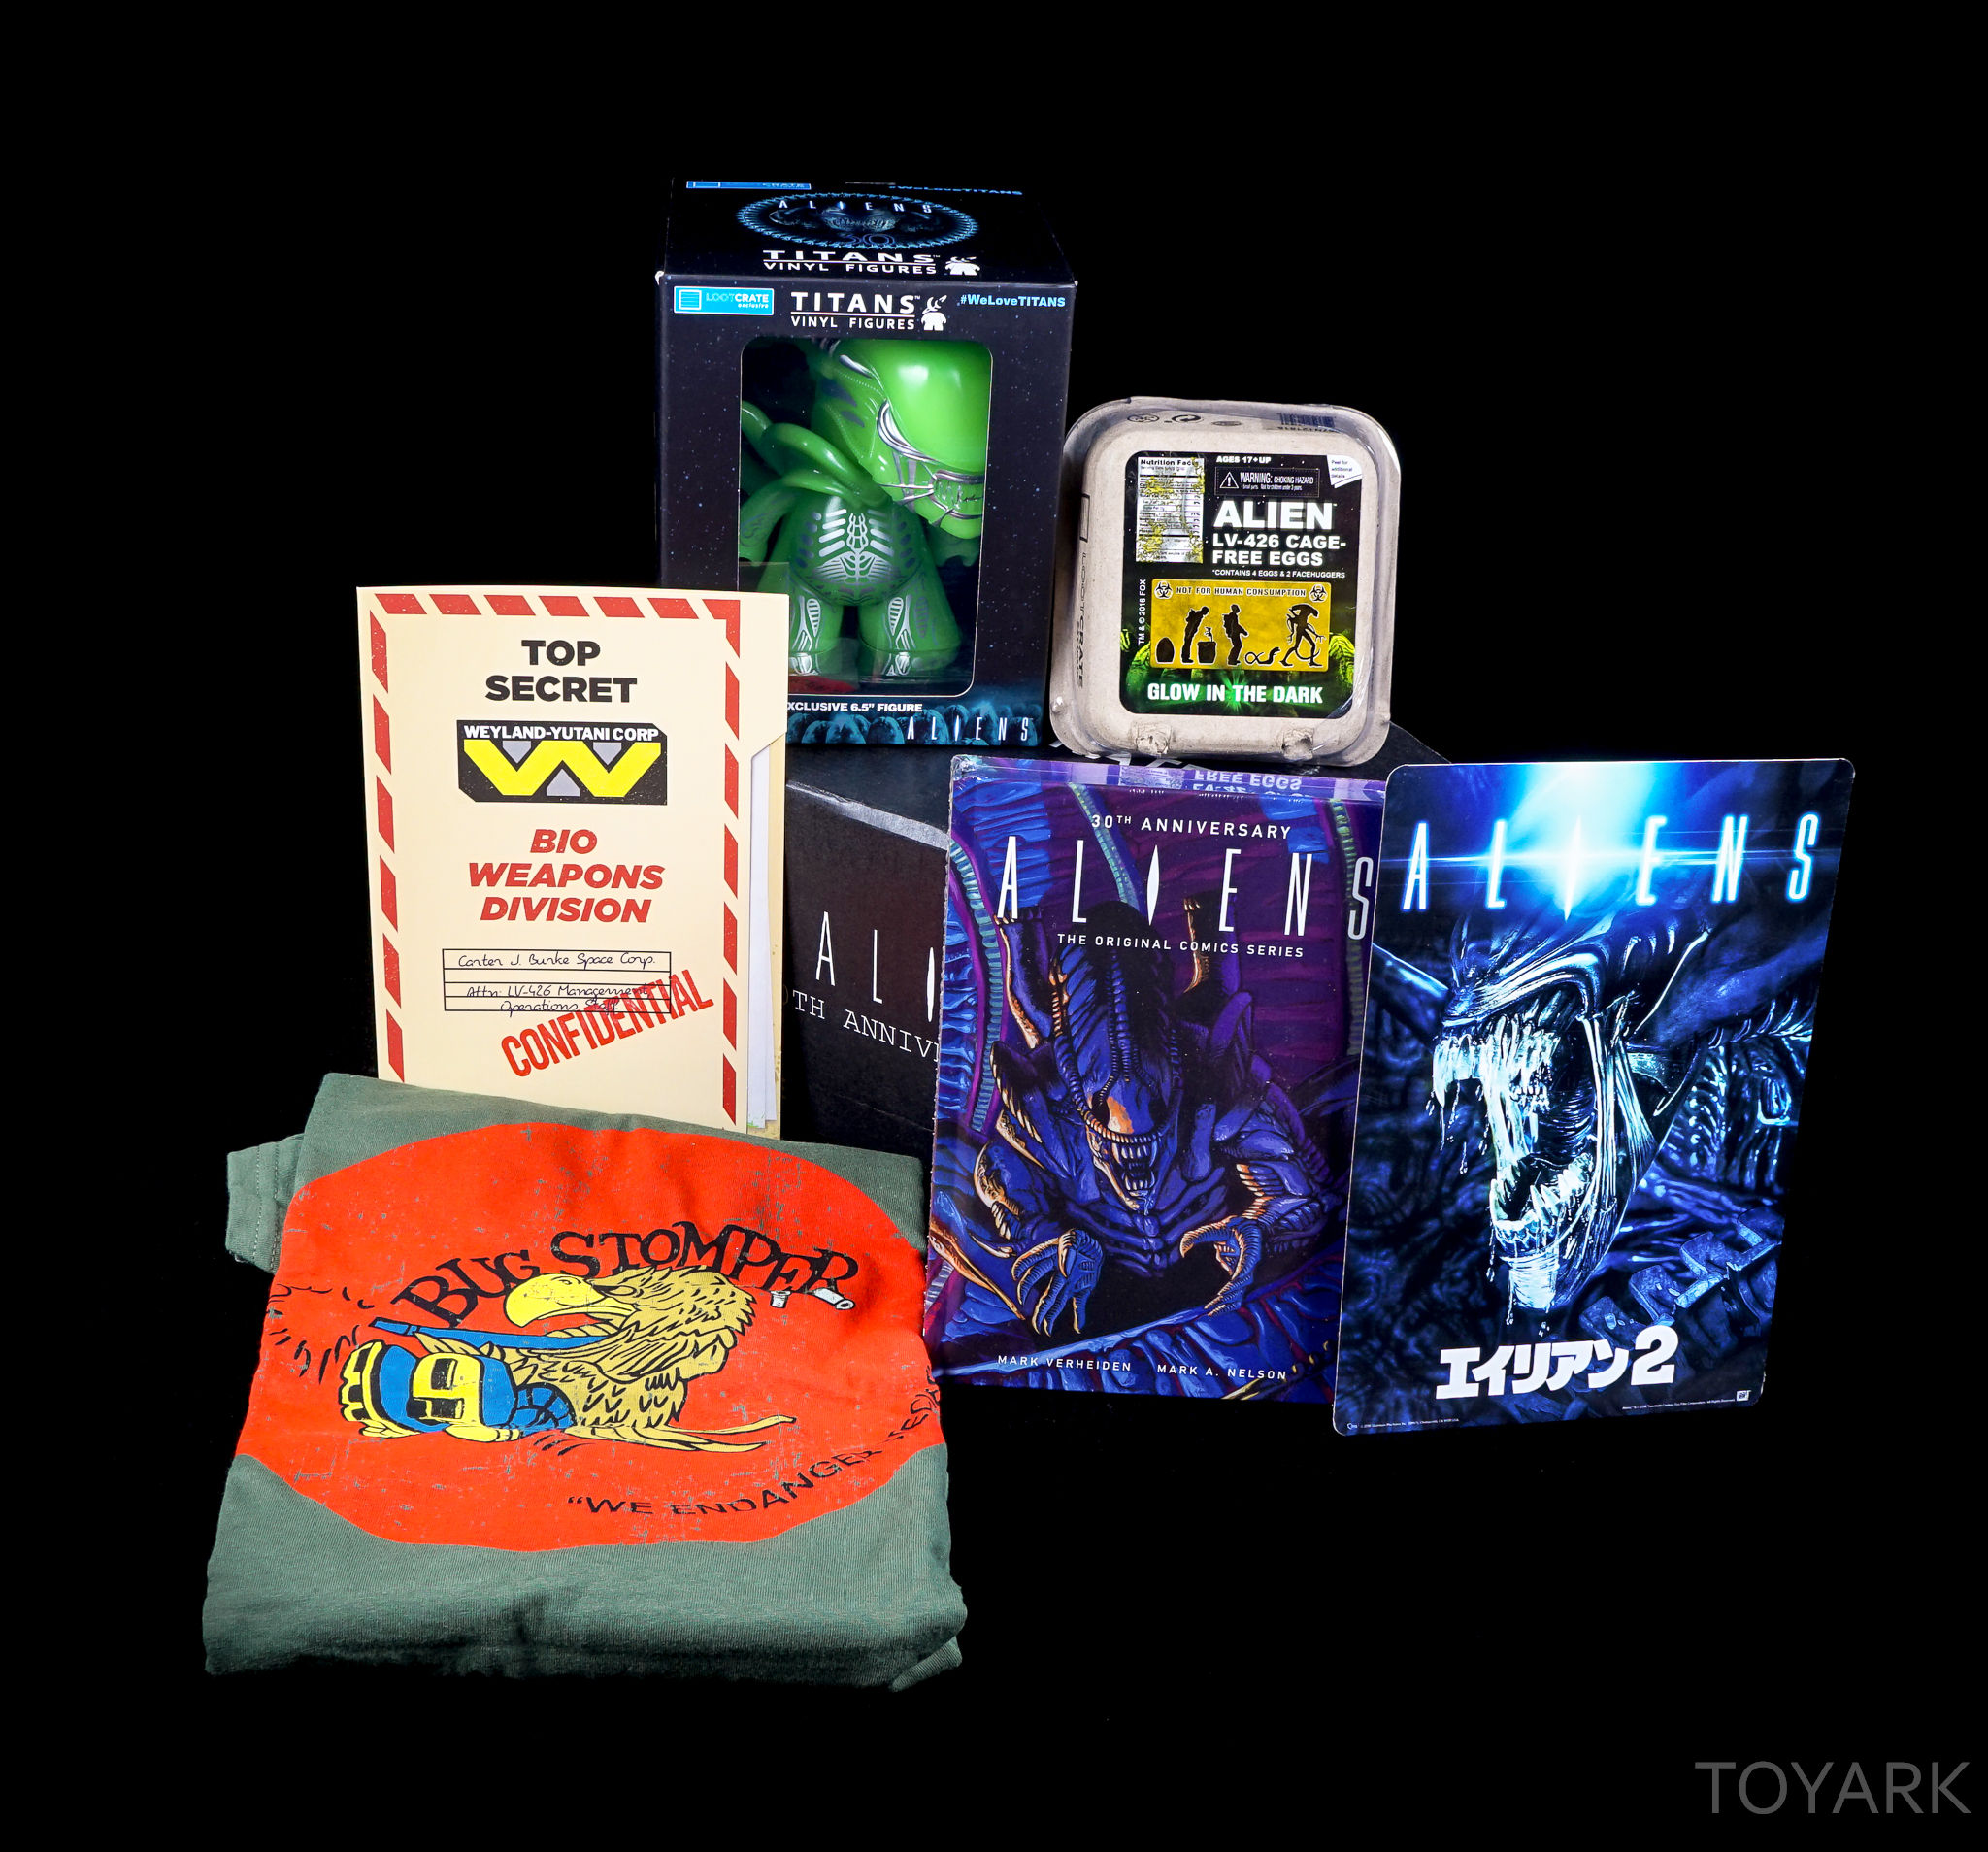 http://news.toyark.com/wp-content/uploads/sites/4/2016/05/Aliens-30th-Anniversary-Lootcrate-004.jpg